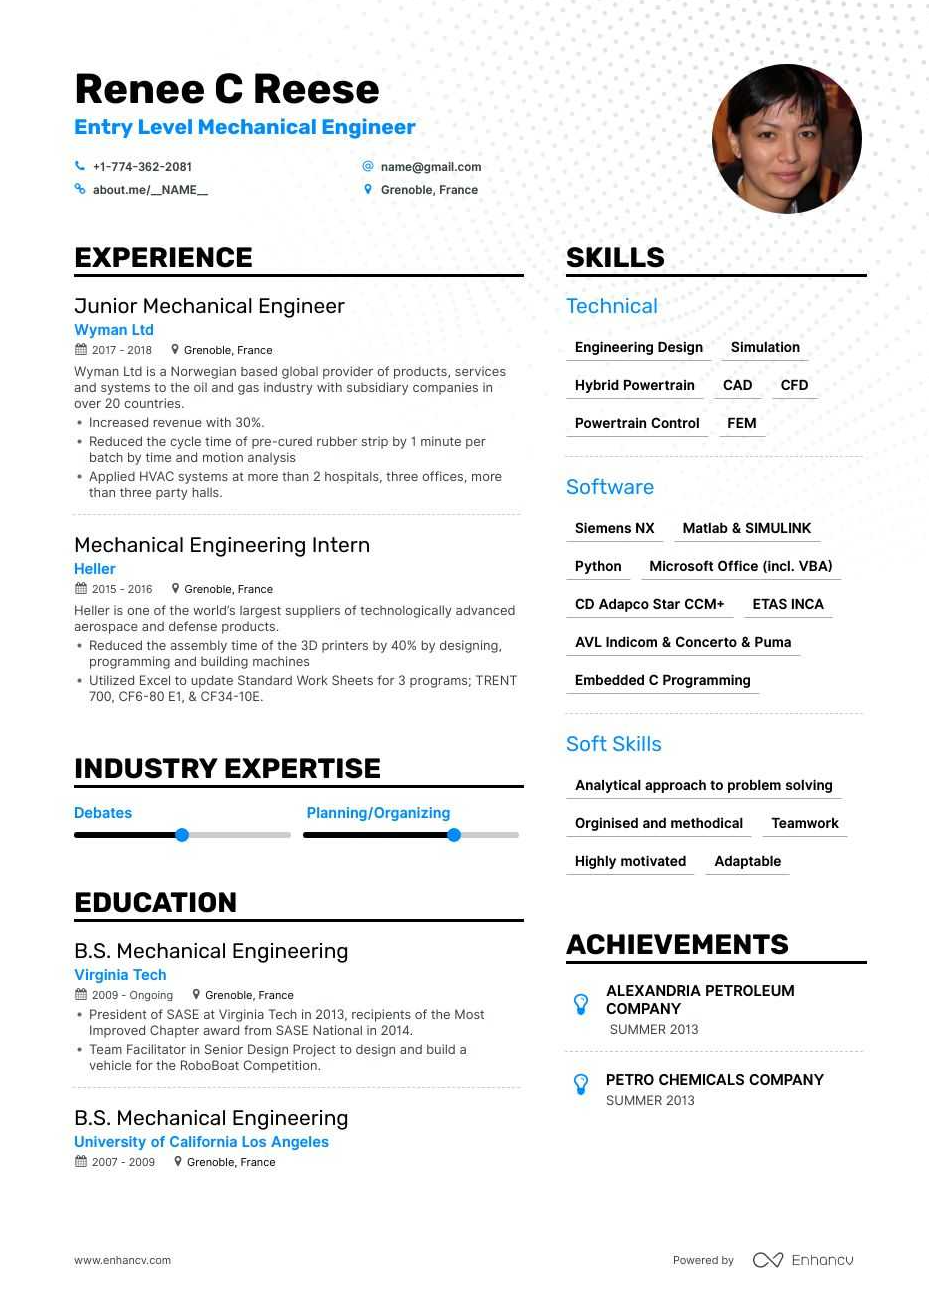 Find Entry Level Mechanical Engineering Resume